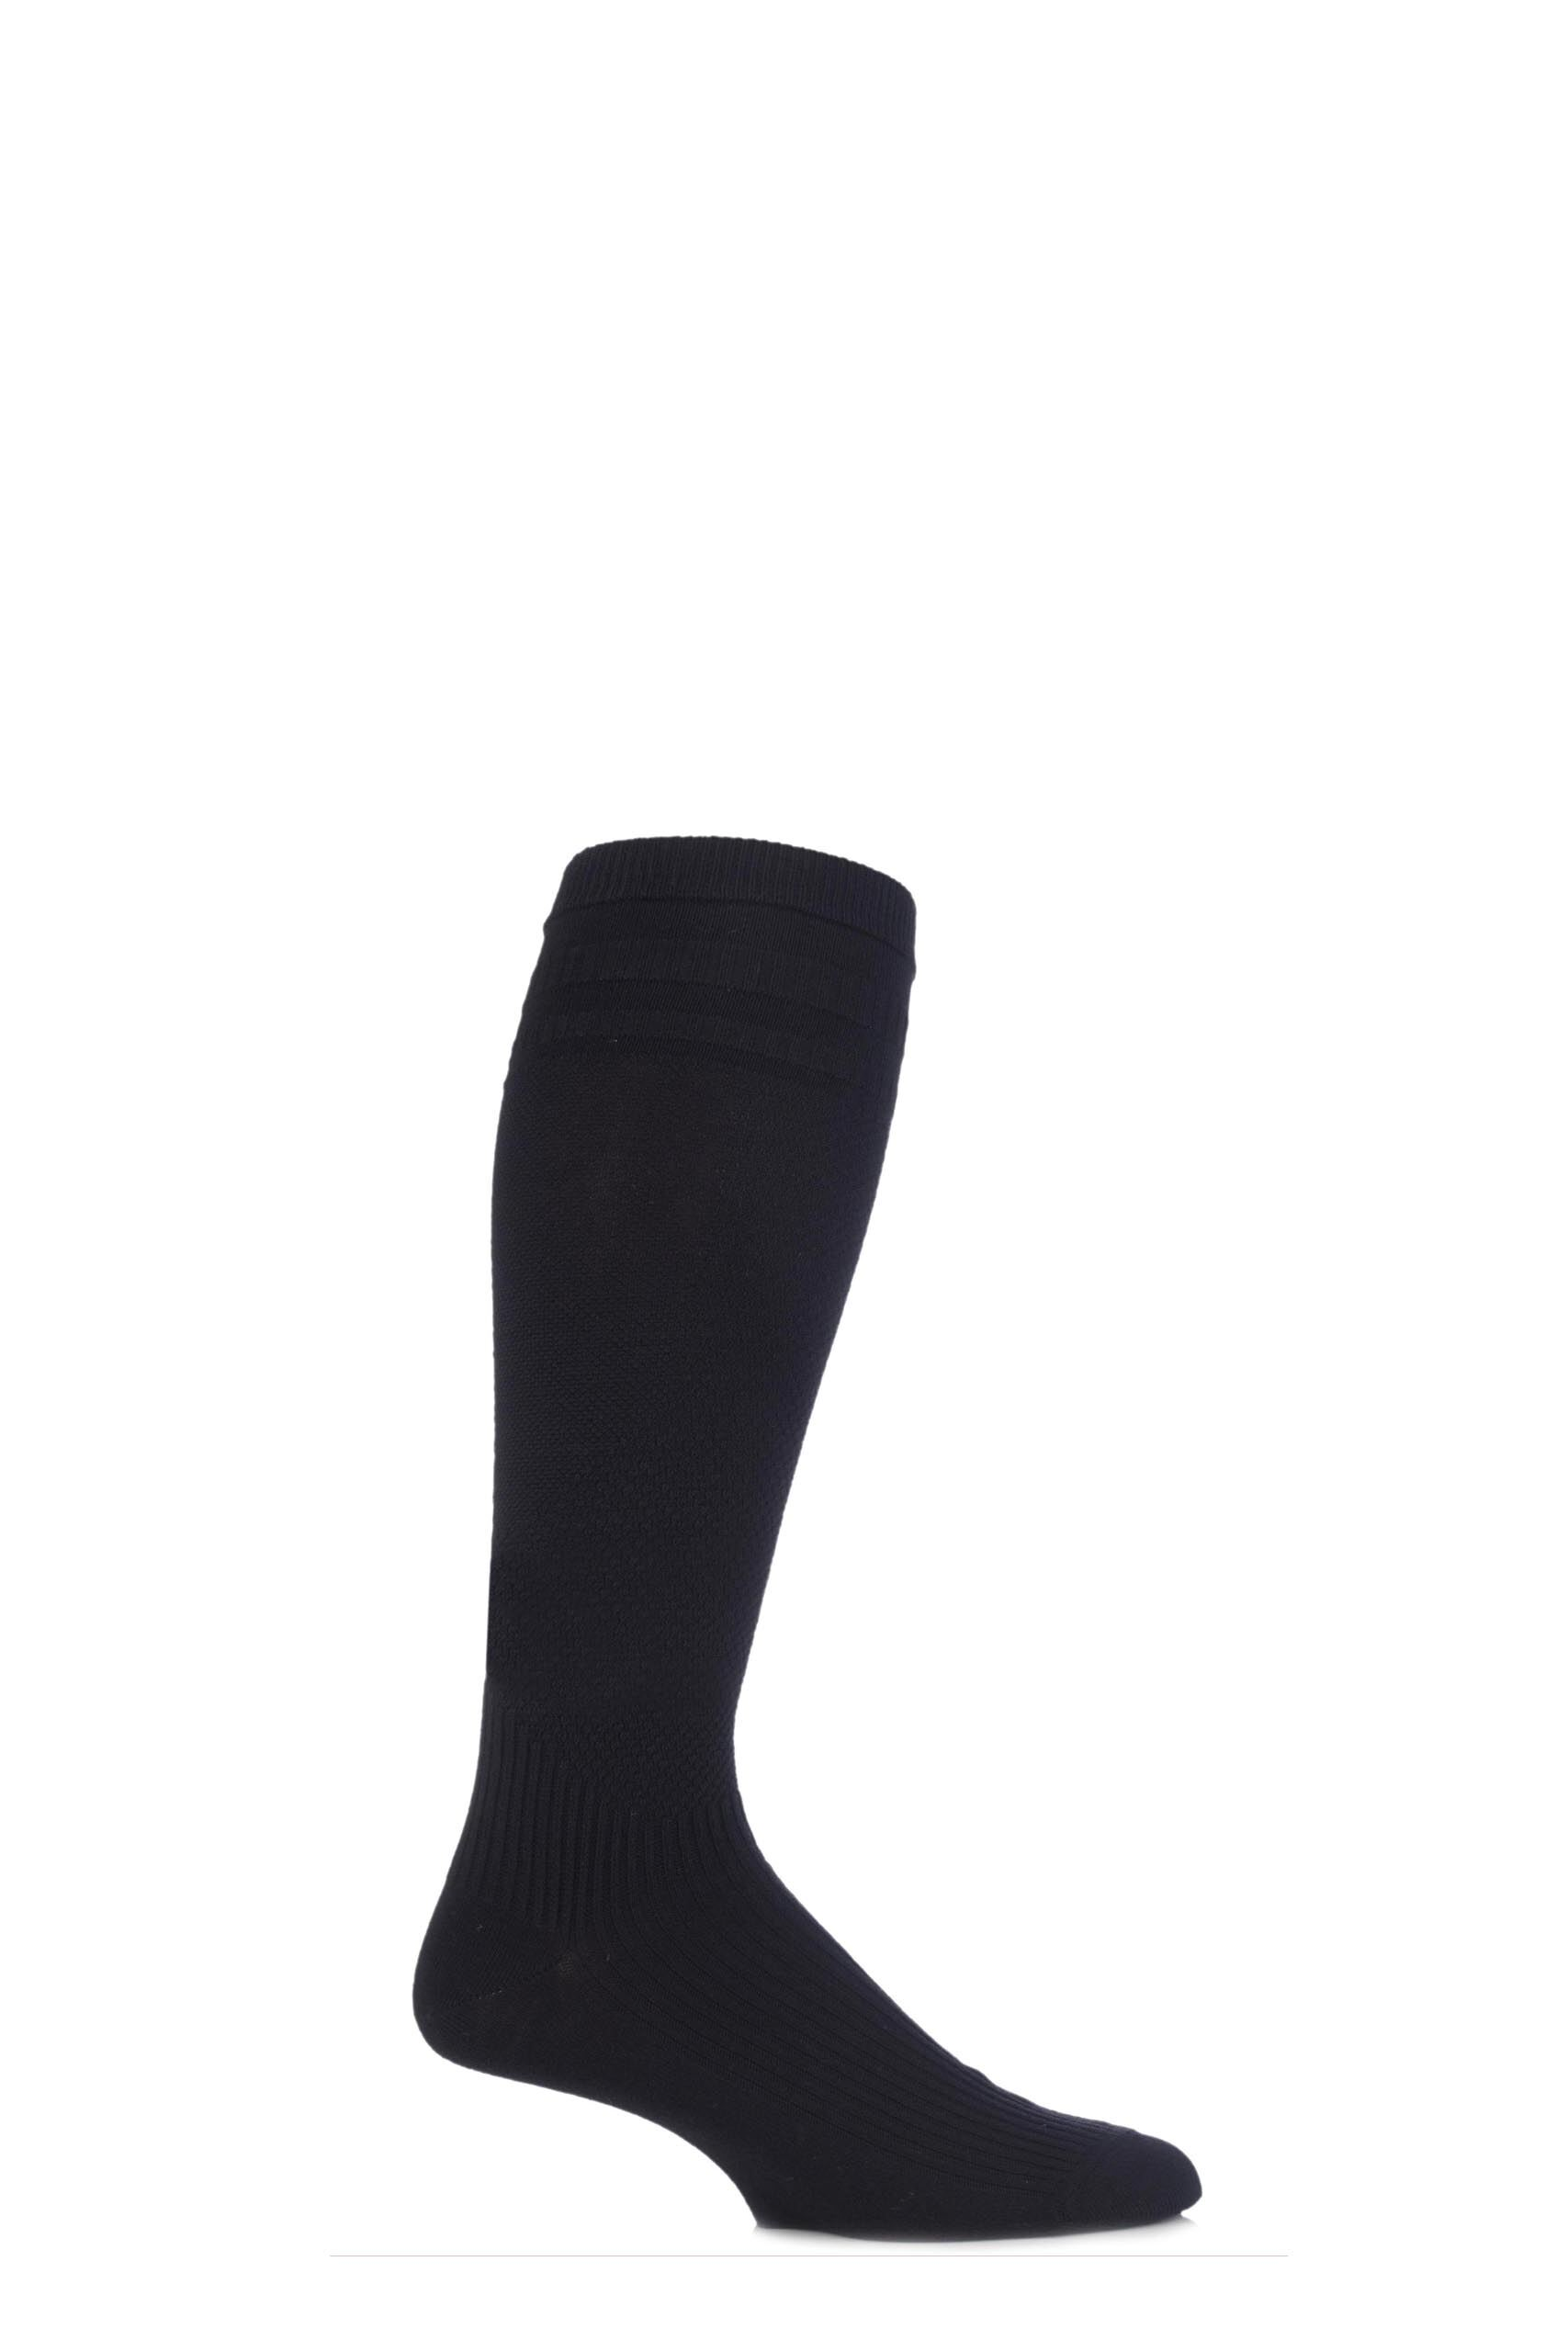 Image of 1 Pair Black Energisox Compression Socks with Softop Men's 9-12 Mens - HJ Hall